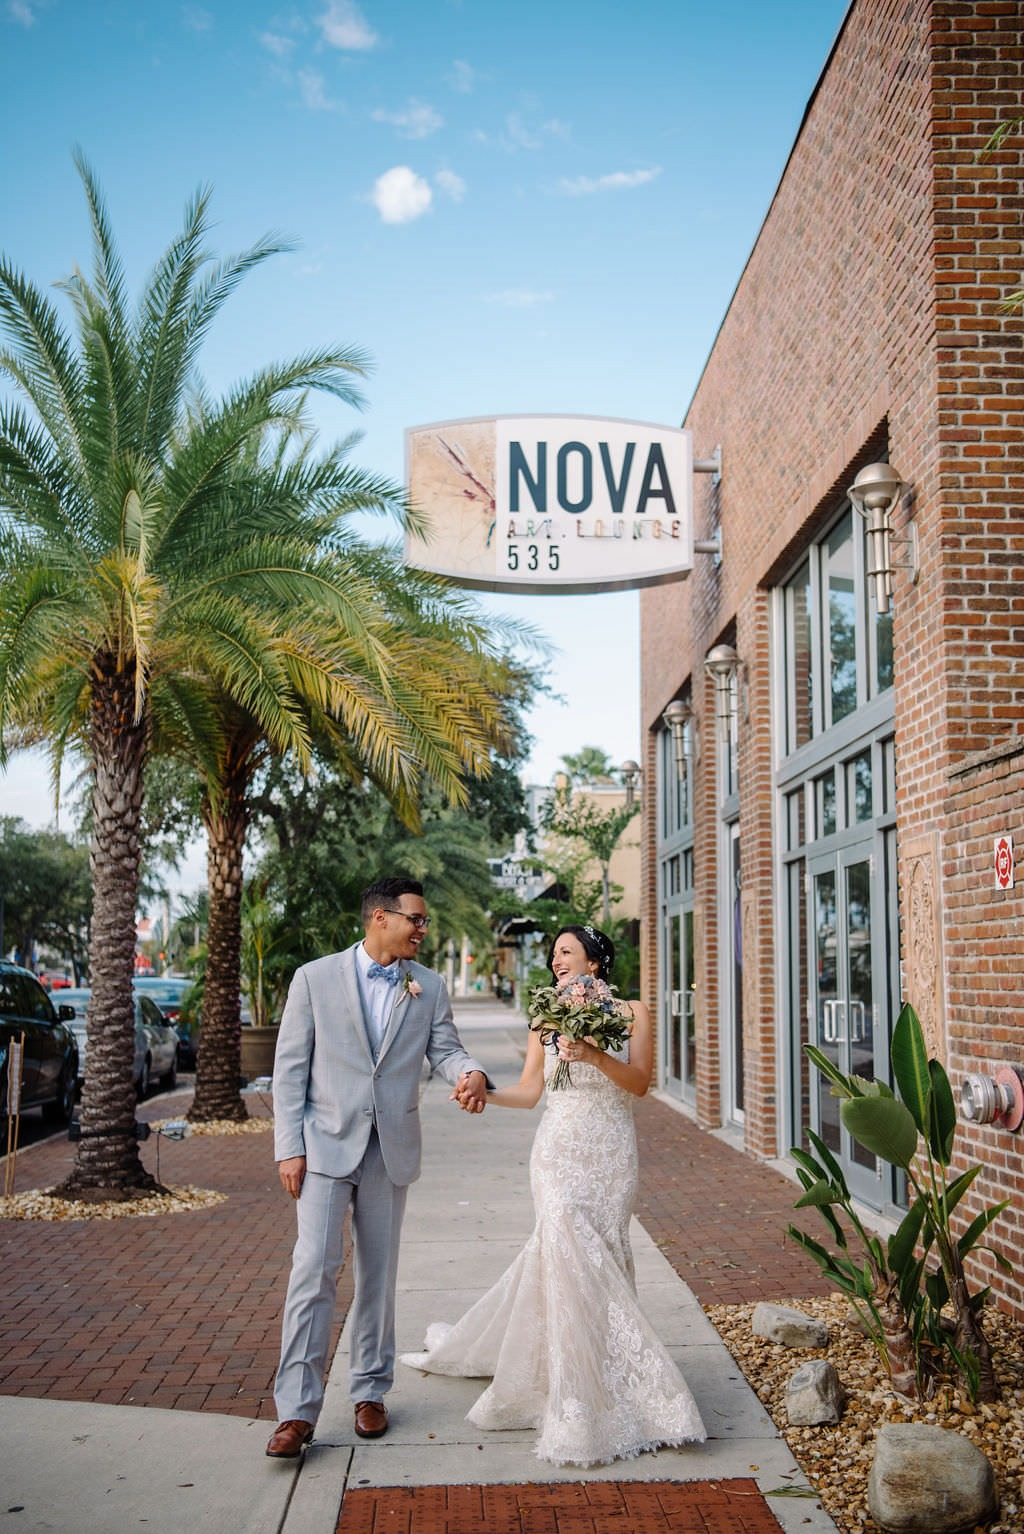 Bride and groom at NOVA 535 in St. Pete